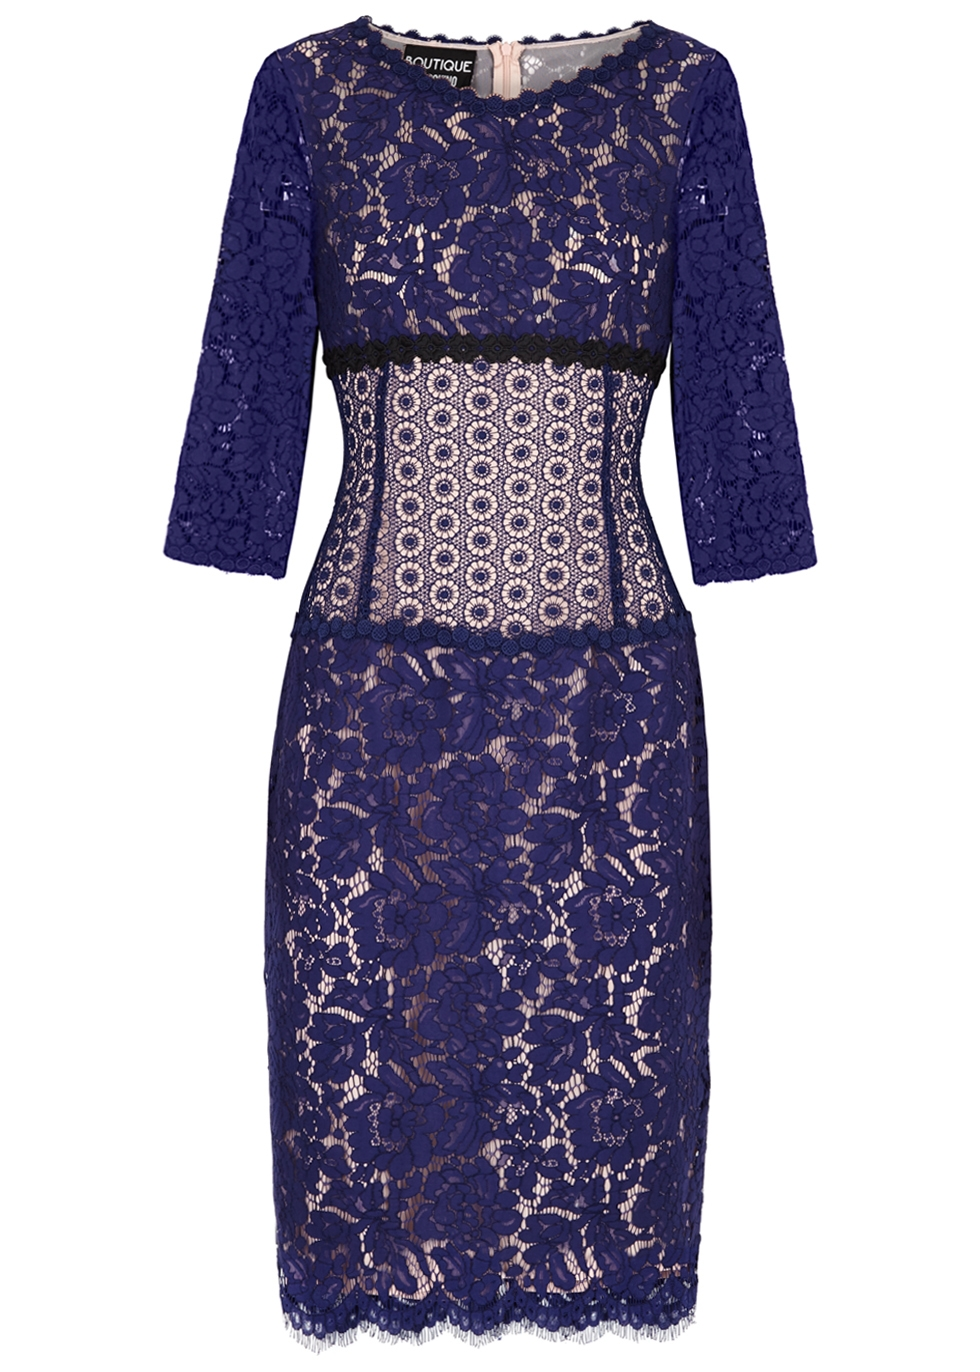 BOUTIQUE MOSCHINO BLUE PANELLED LACE DRESS